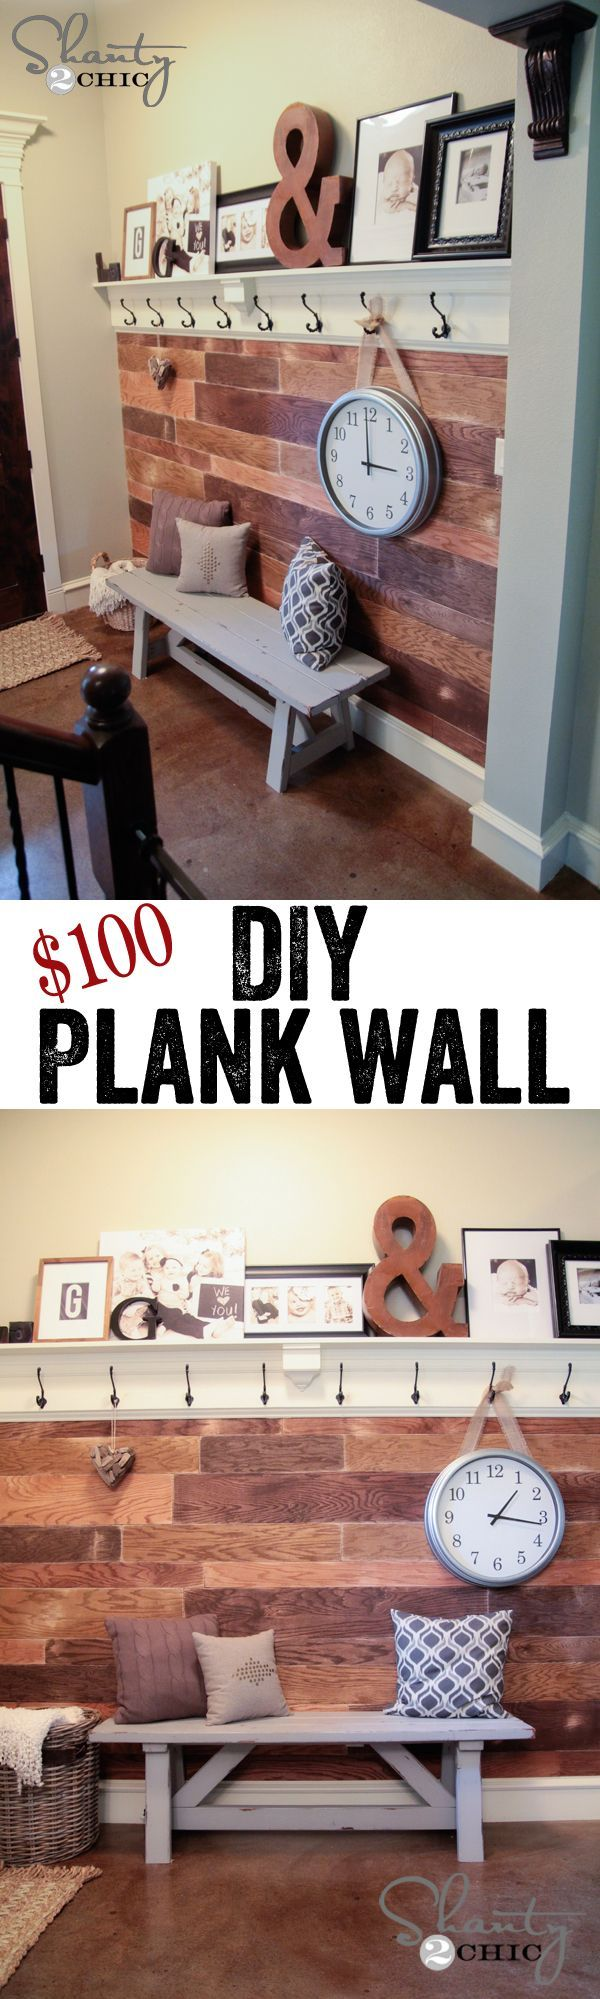 Easy and Cheap DIY Plank Wall!  So Pretty... LOVE it!